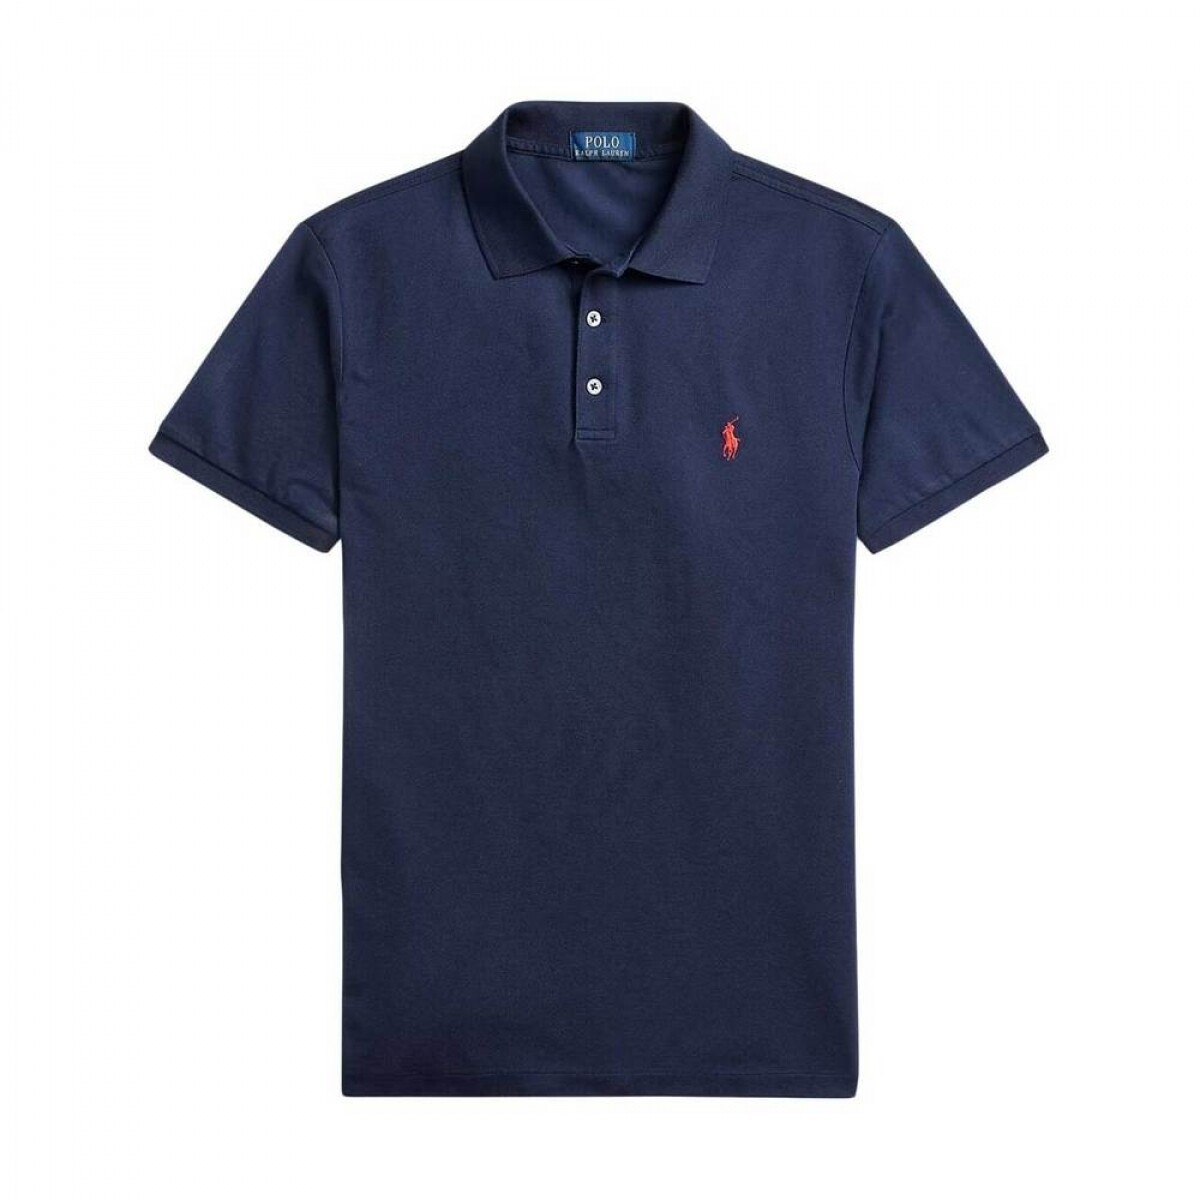 Ralph Lauren | Polo | 710541705 navy